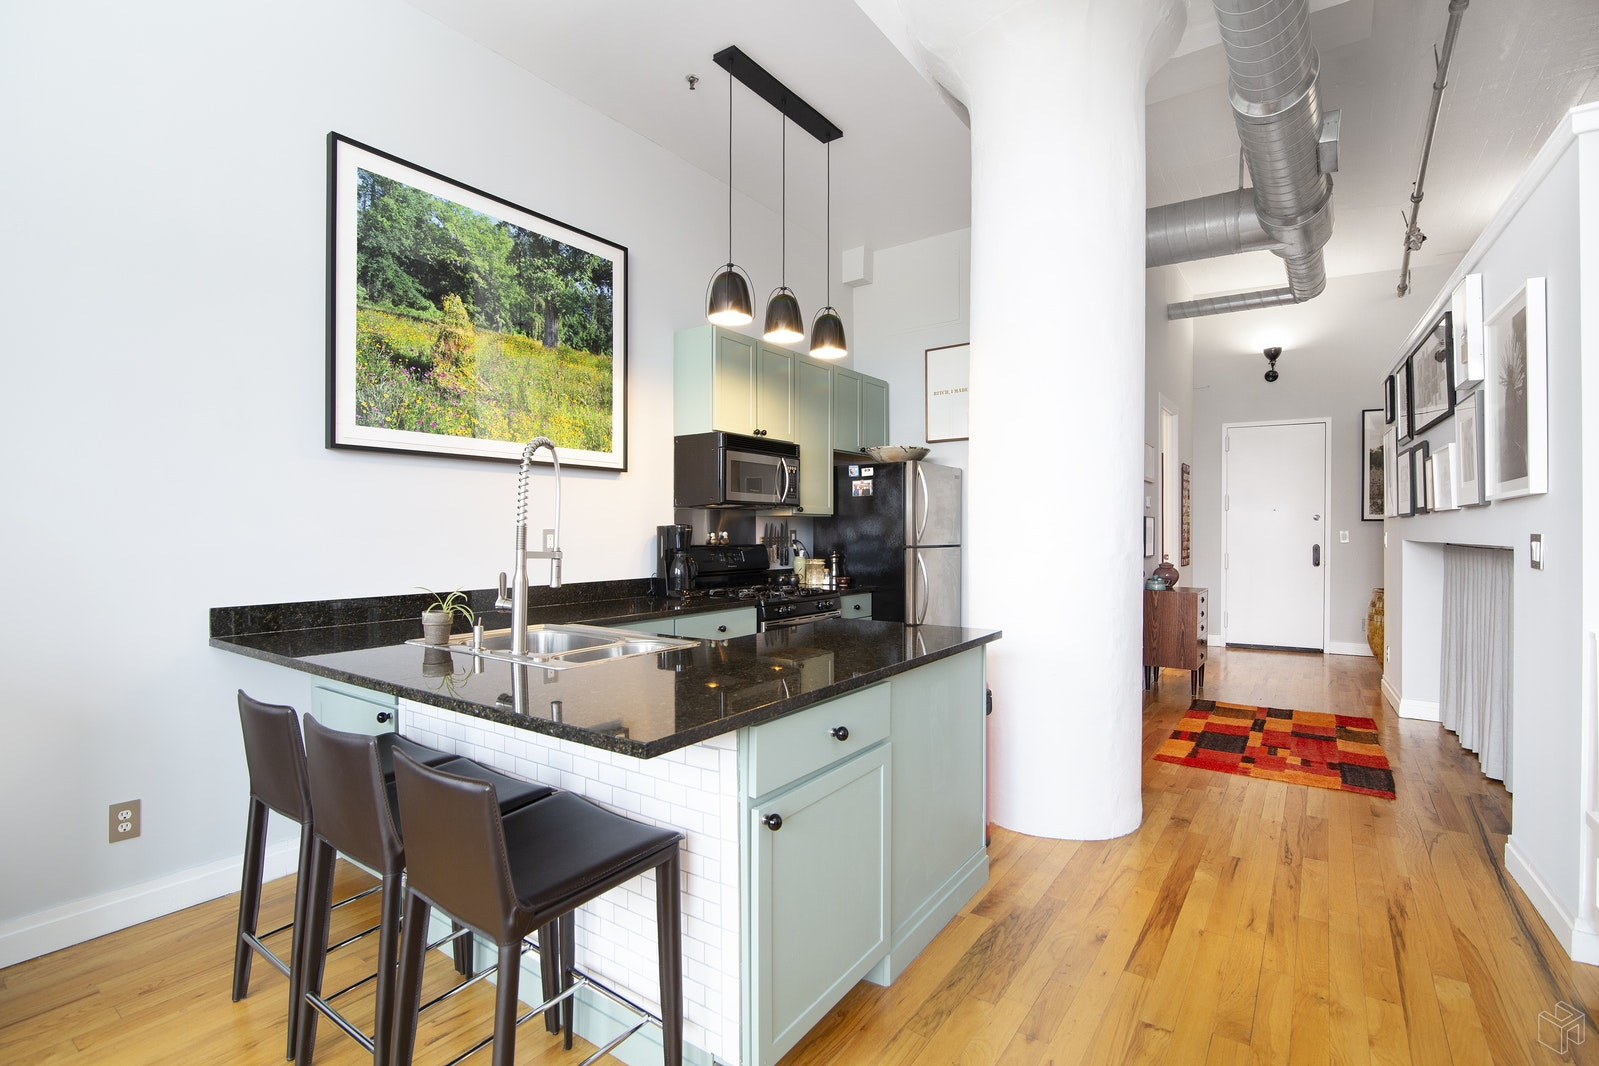 689 Myrtle Avenue 2a, Clinton Hill, Brooklyn, NY, 11205, $798,000, Sold Property, Halstead Real Estate, Photo 4